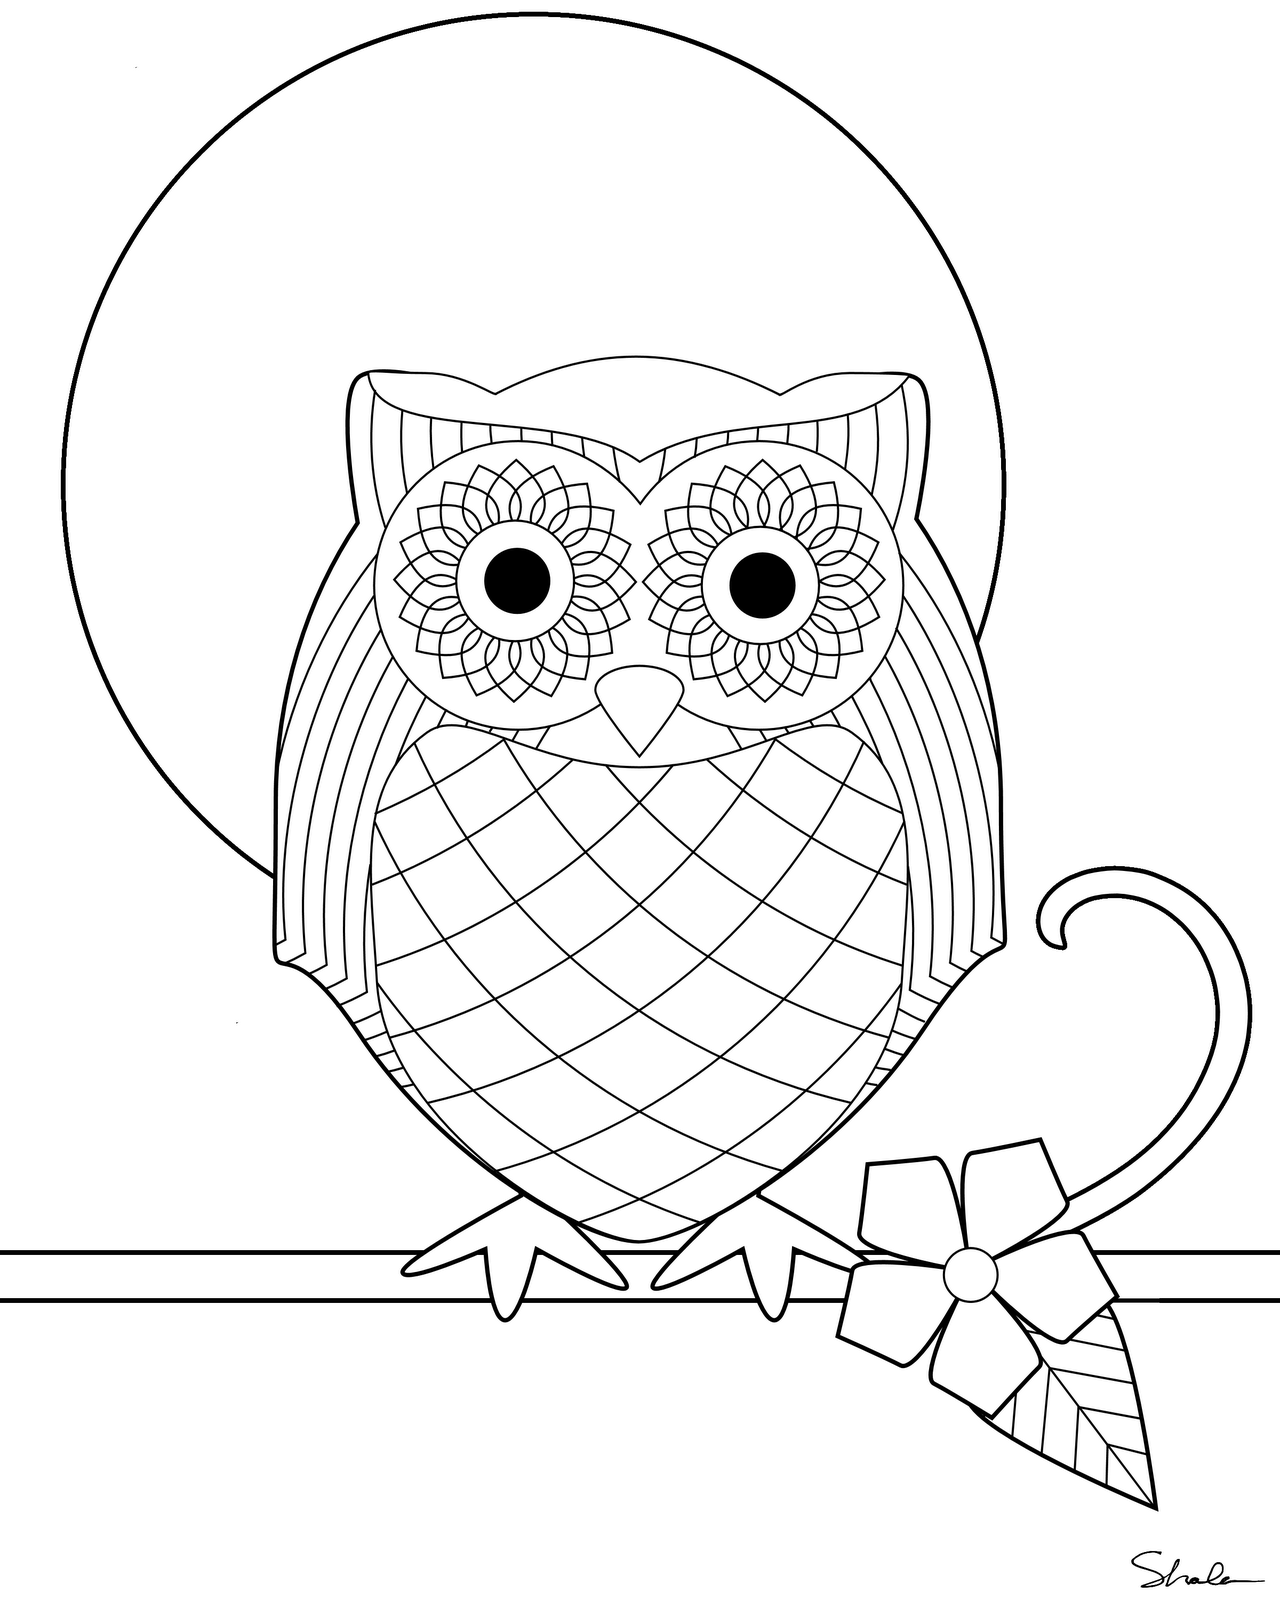 Owl_Coloring_Pictures_For_Free_01